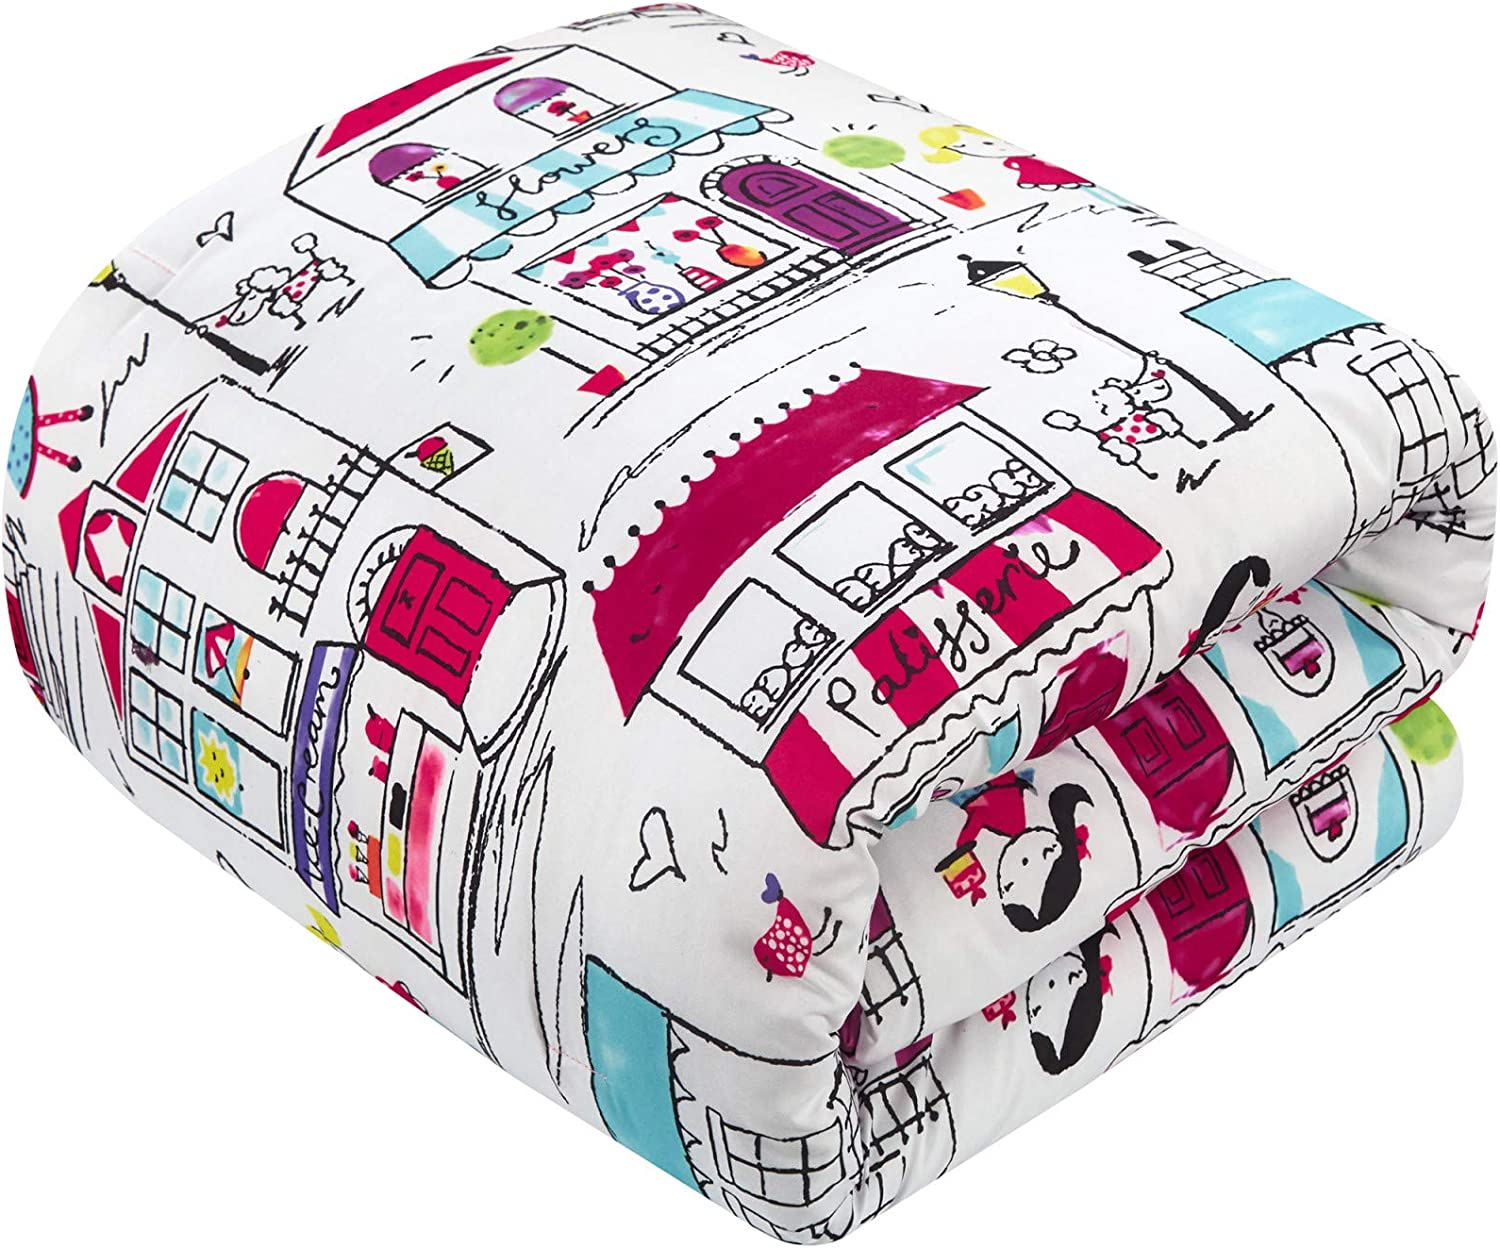 Chic Home Race 5 Piece Comforter Set High Speed Cars Planes Boats Theme Youth Design Bedding-Throw Blanket Decorative Pillow Shams Included Full